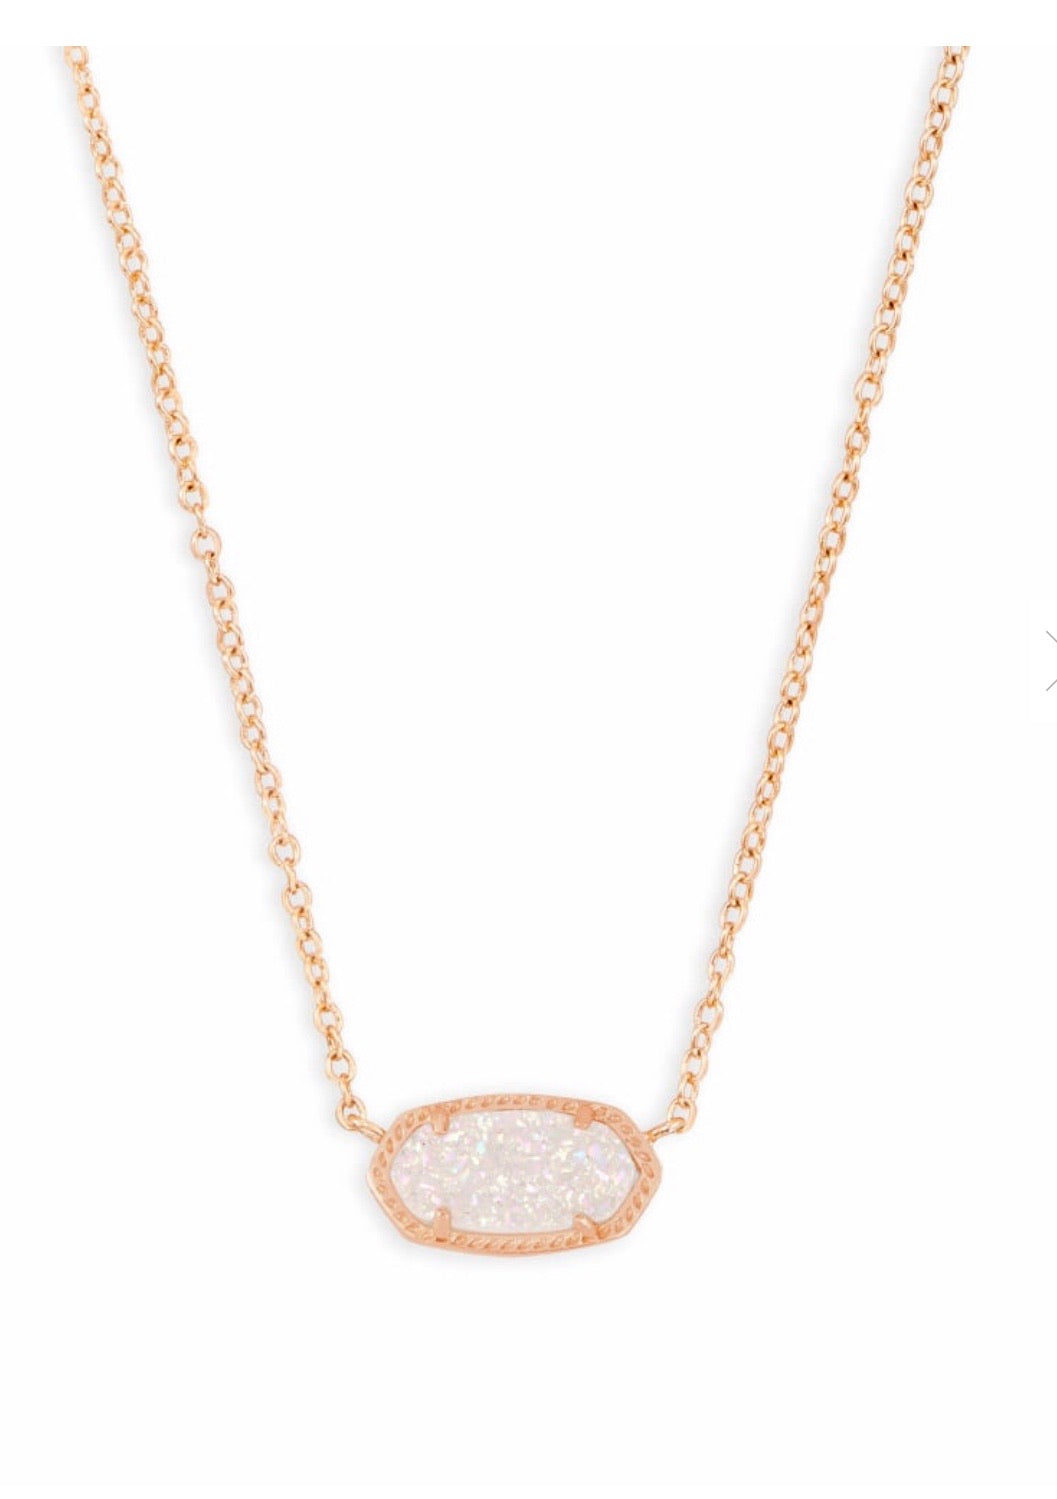 ELISA ROSE GOLD NECKLACE IRIDESCENT DRUSY